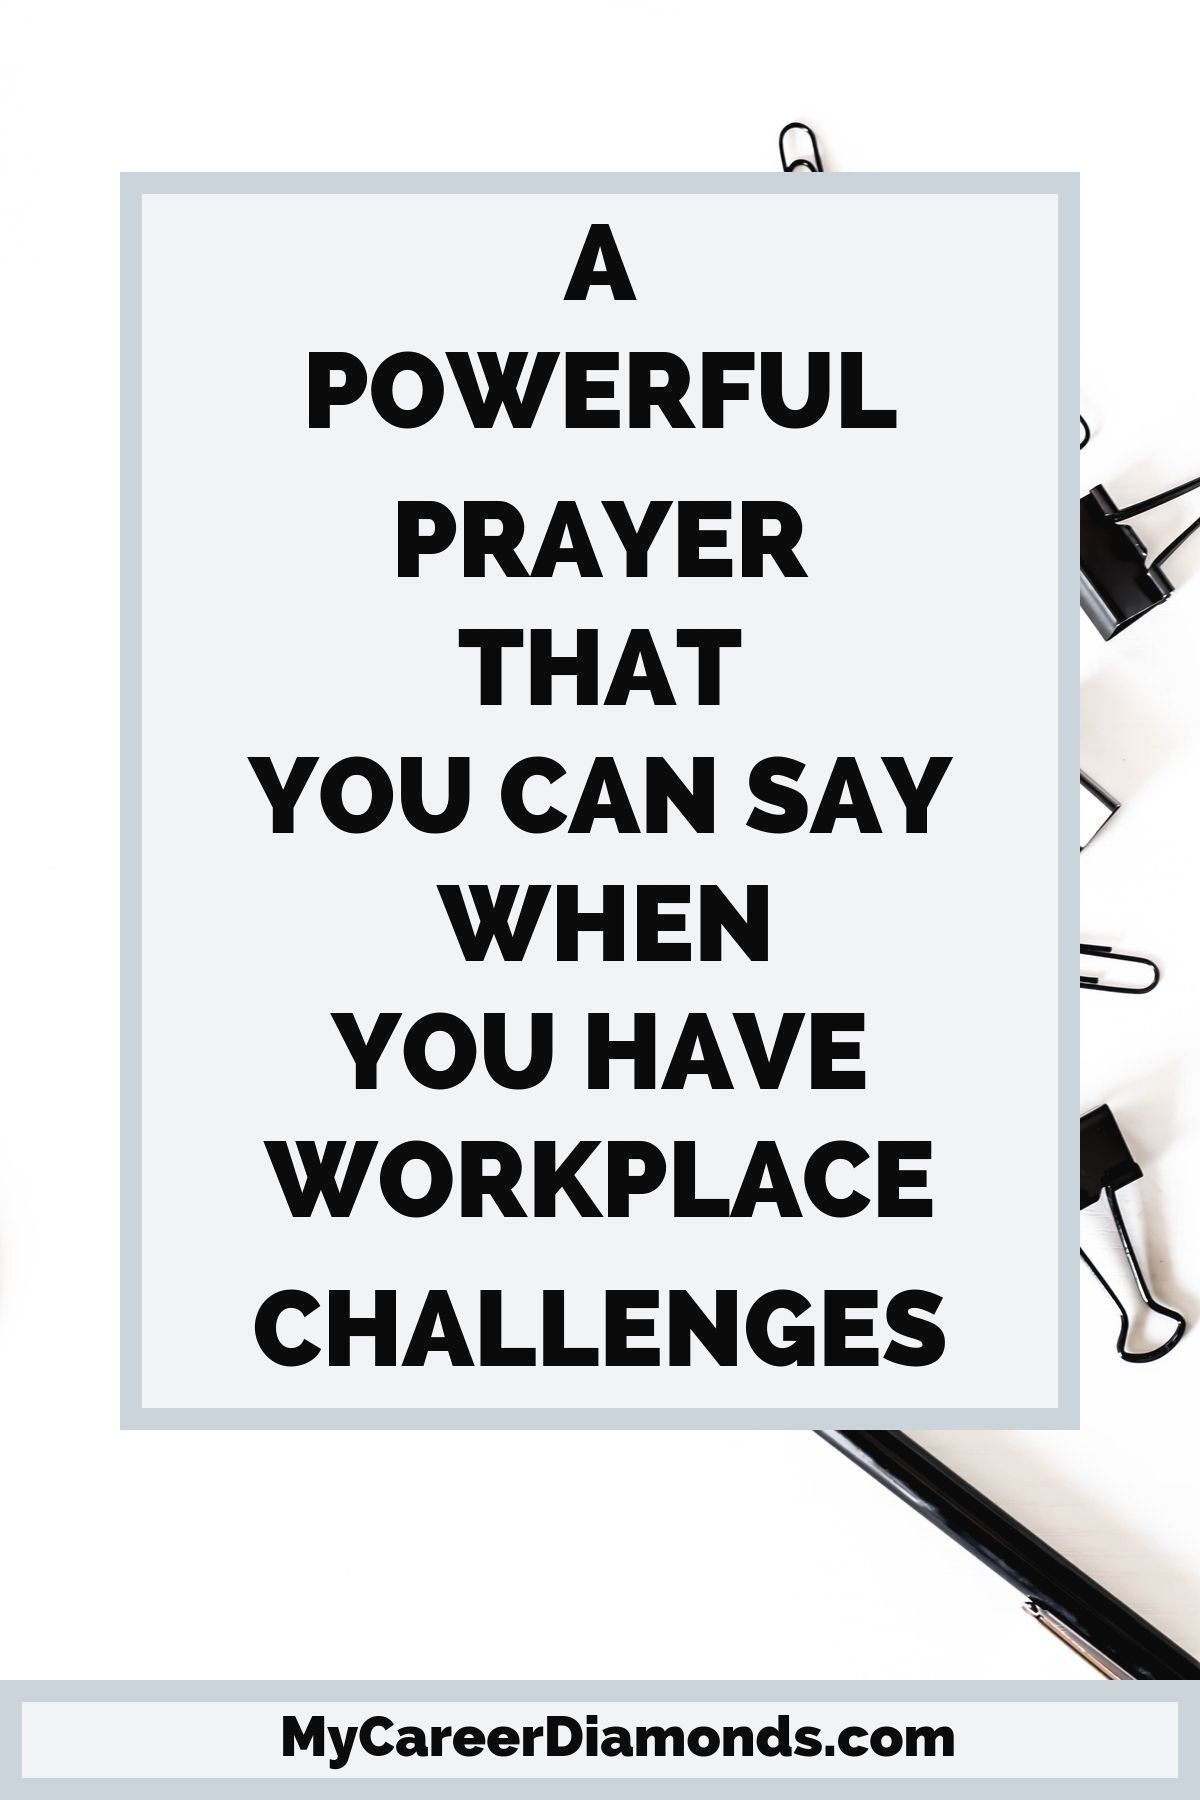 Are you having challenges at work? Here is a short and